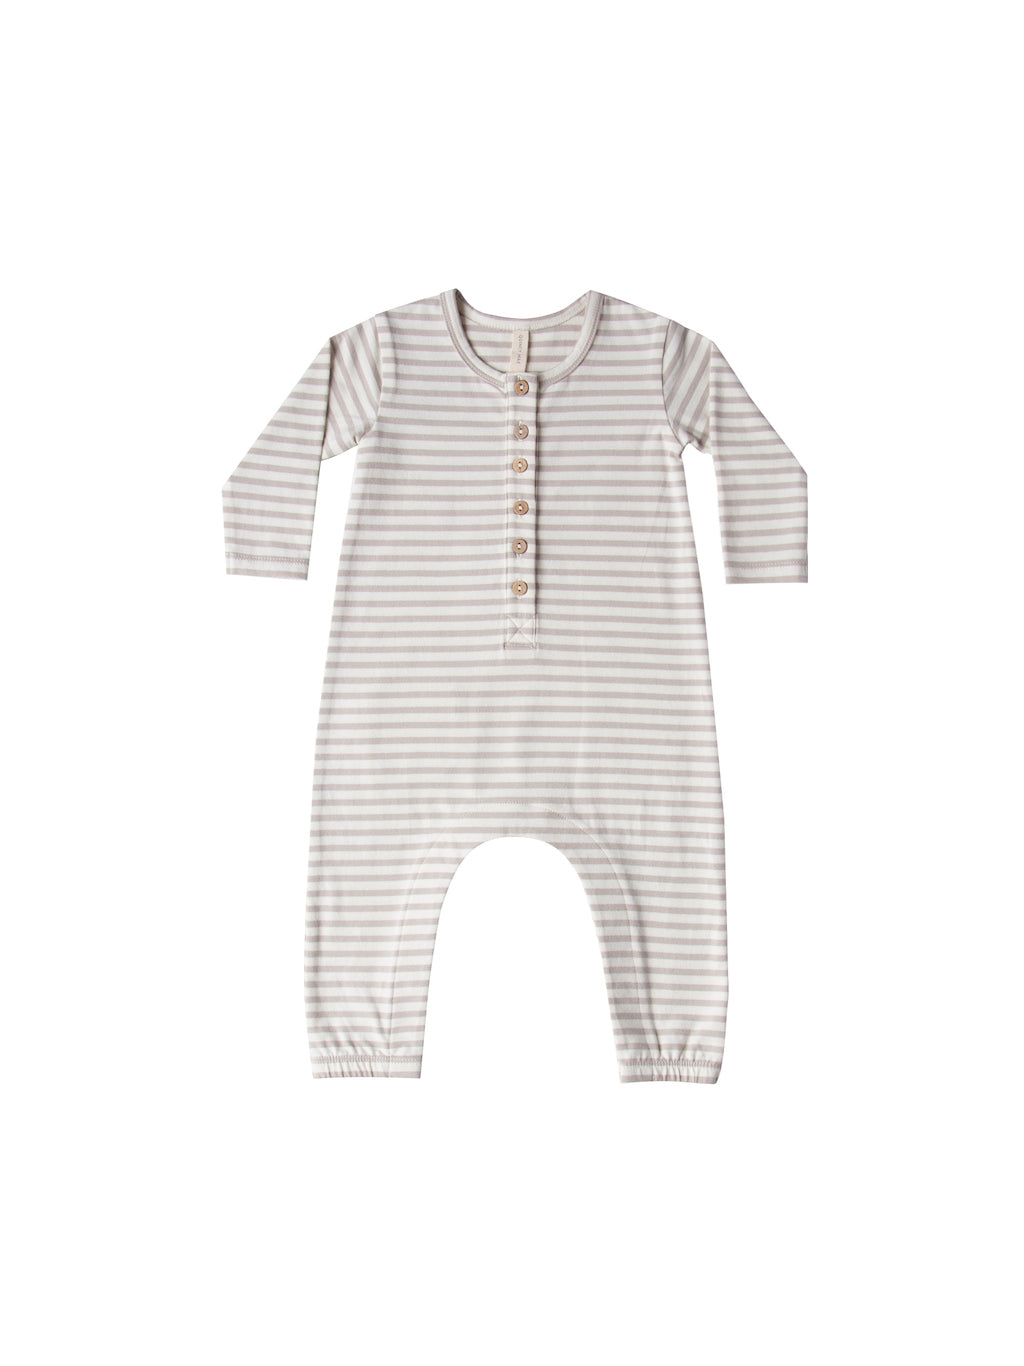 Quincy Mae Longsleeve Jumpsuit in Fog Stripe